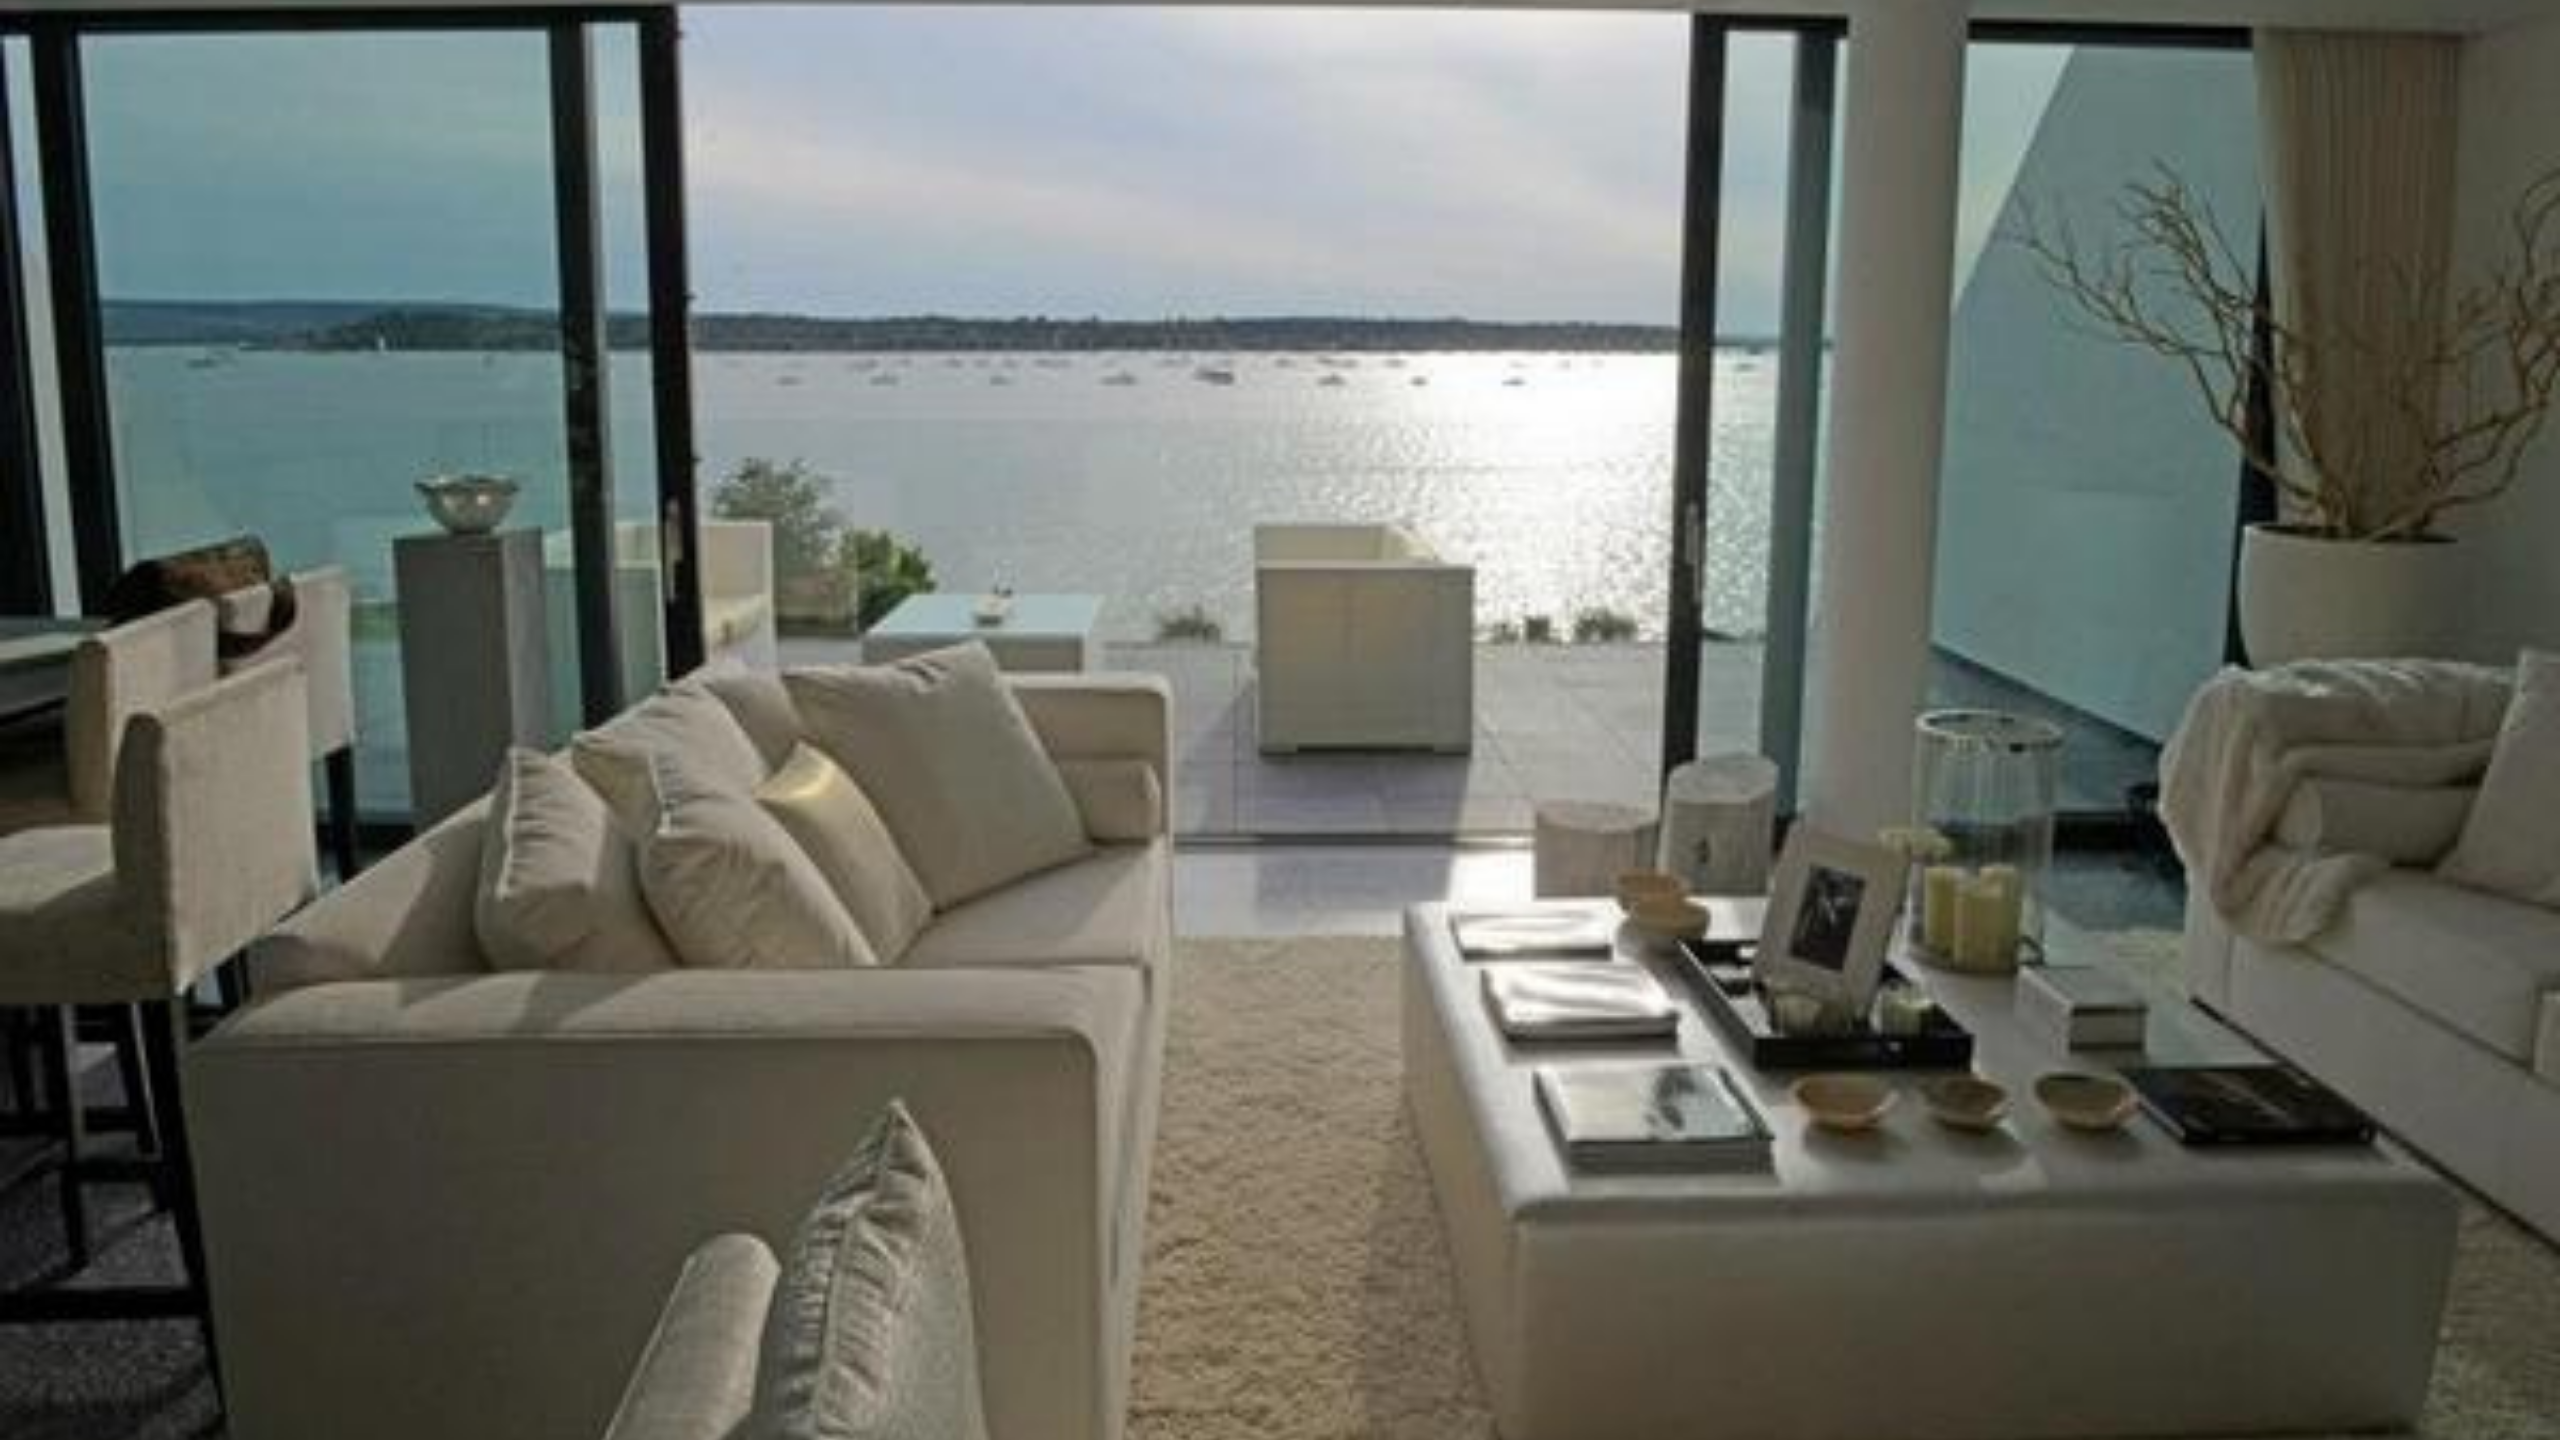 Sandbanks Road - Harbour Views from a lounge area with sliding doors opening onto a terrace